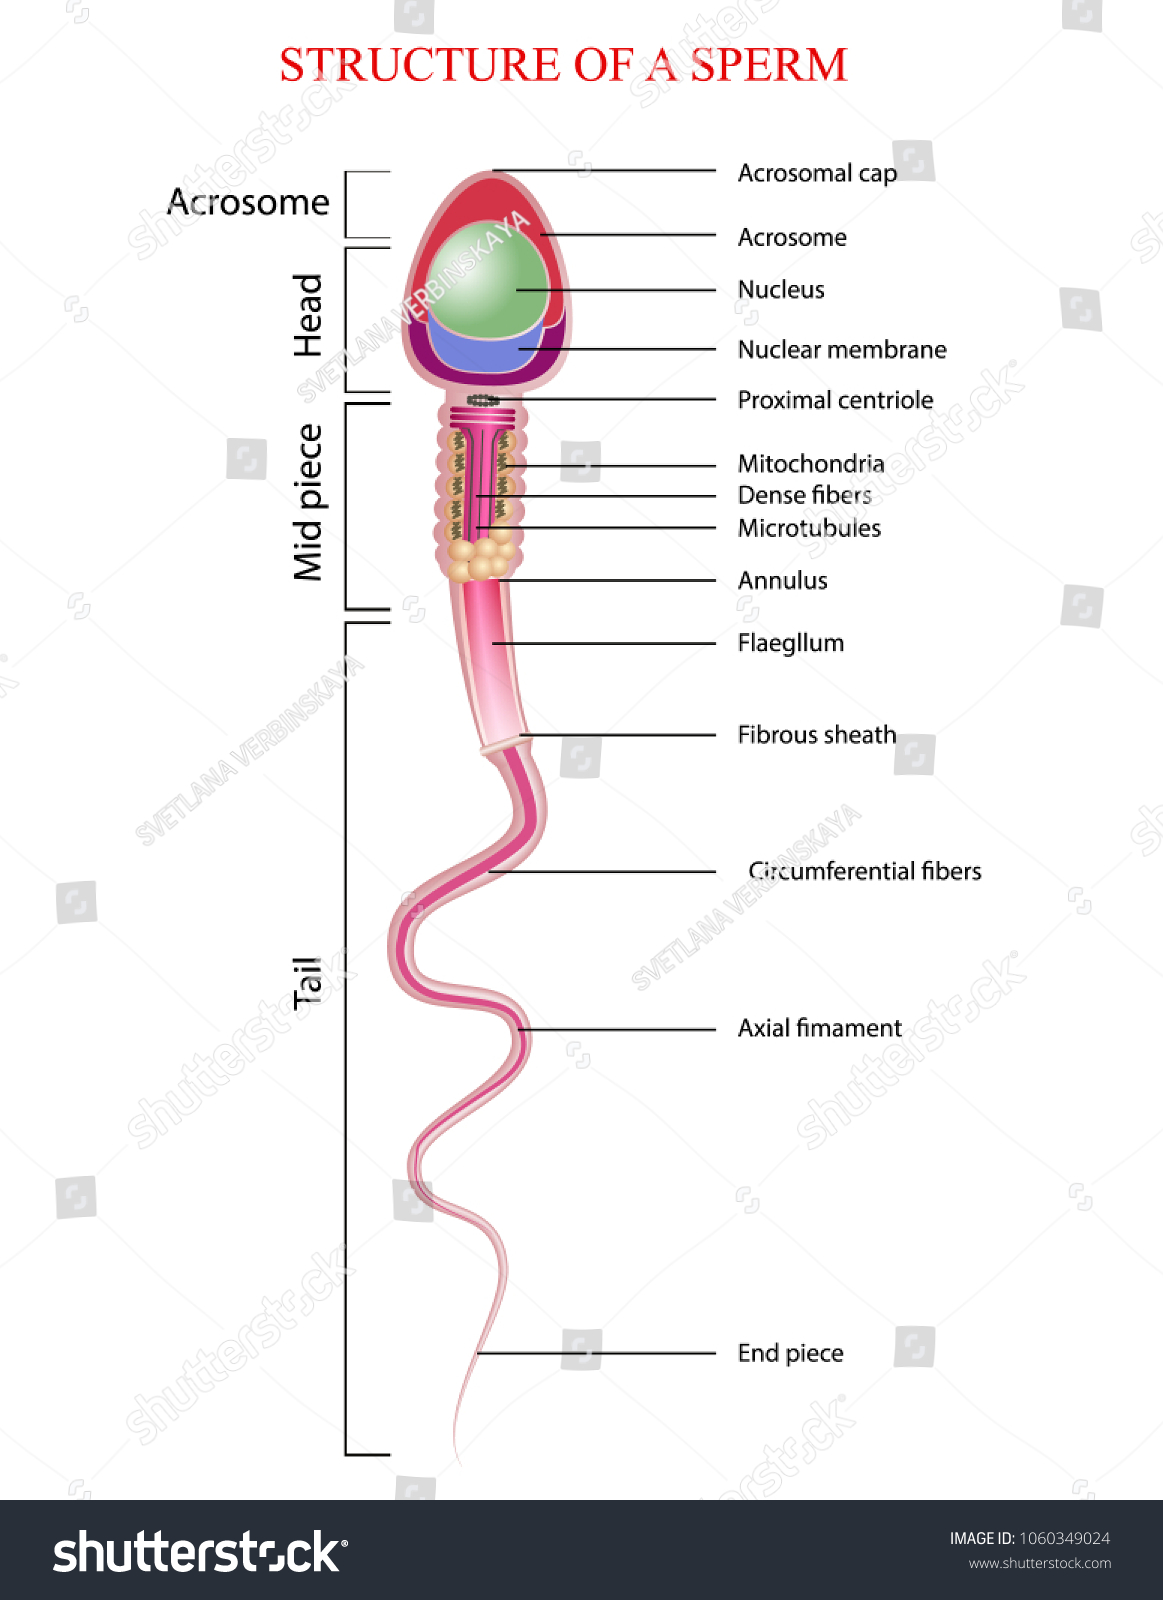 Stock Photo Human Sperm Cell Anatomy Structure Of Spermatozoon